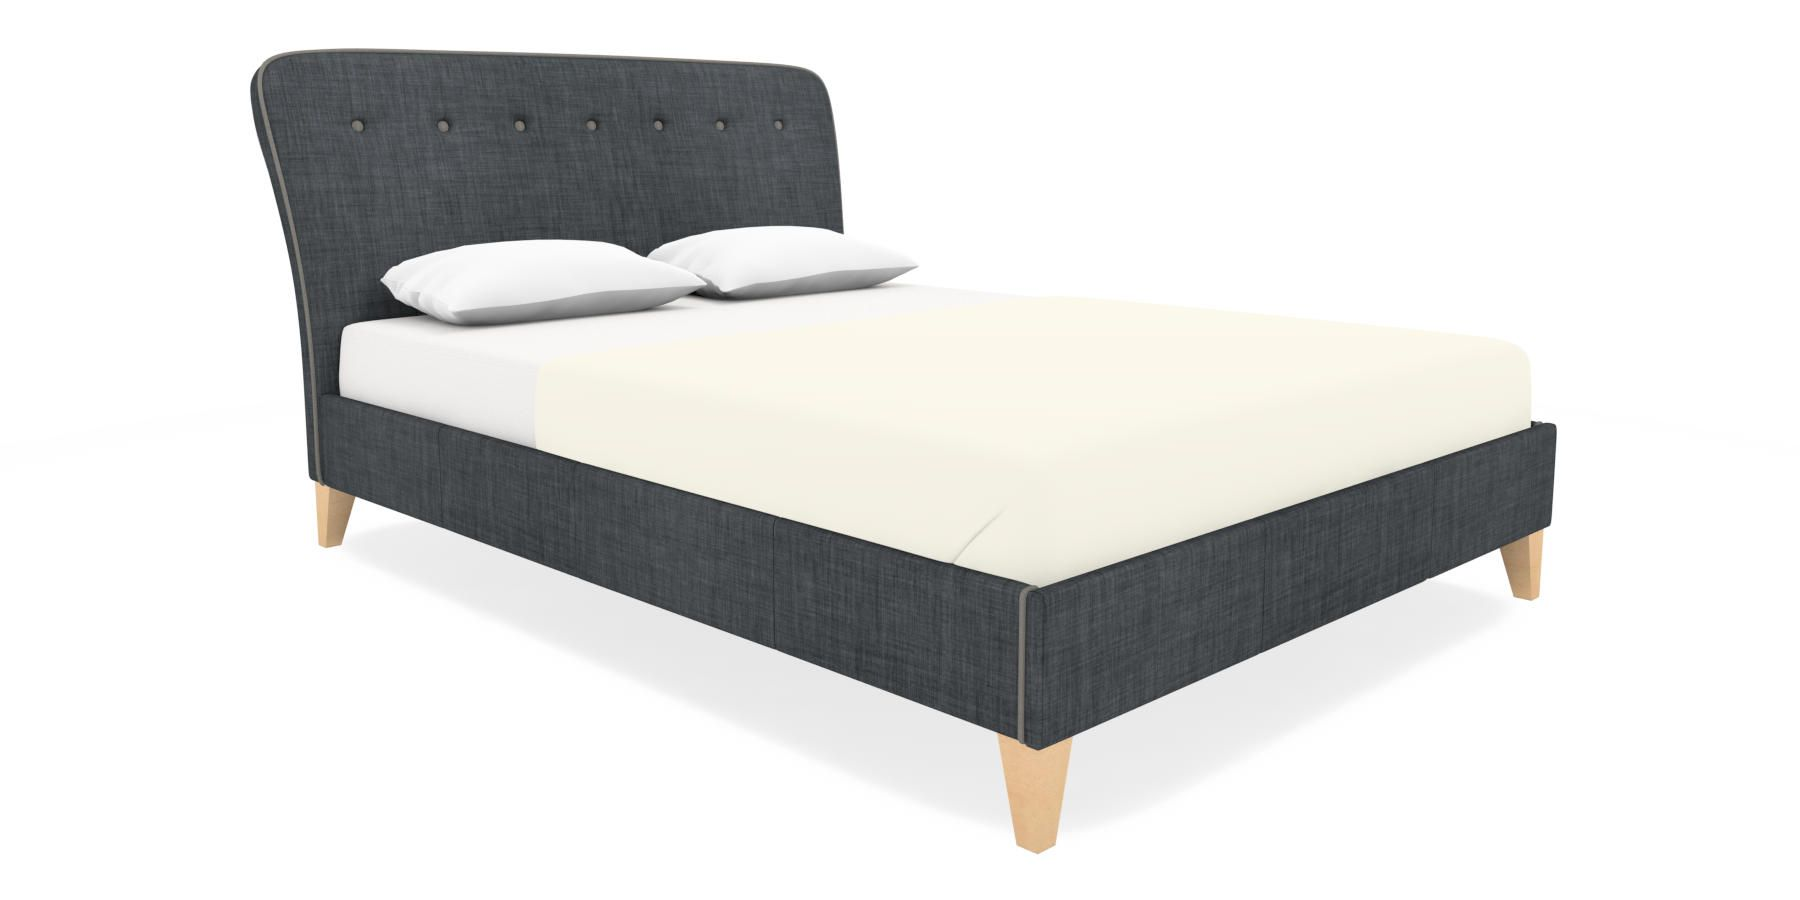 Buy Malmo King Bed Simple Contemporary Charcoal from the Next UK ...